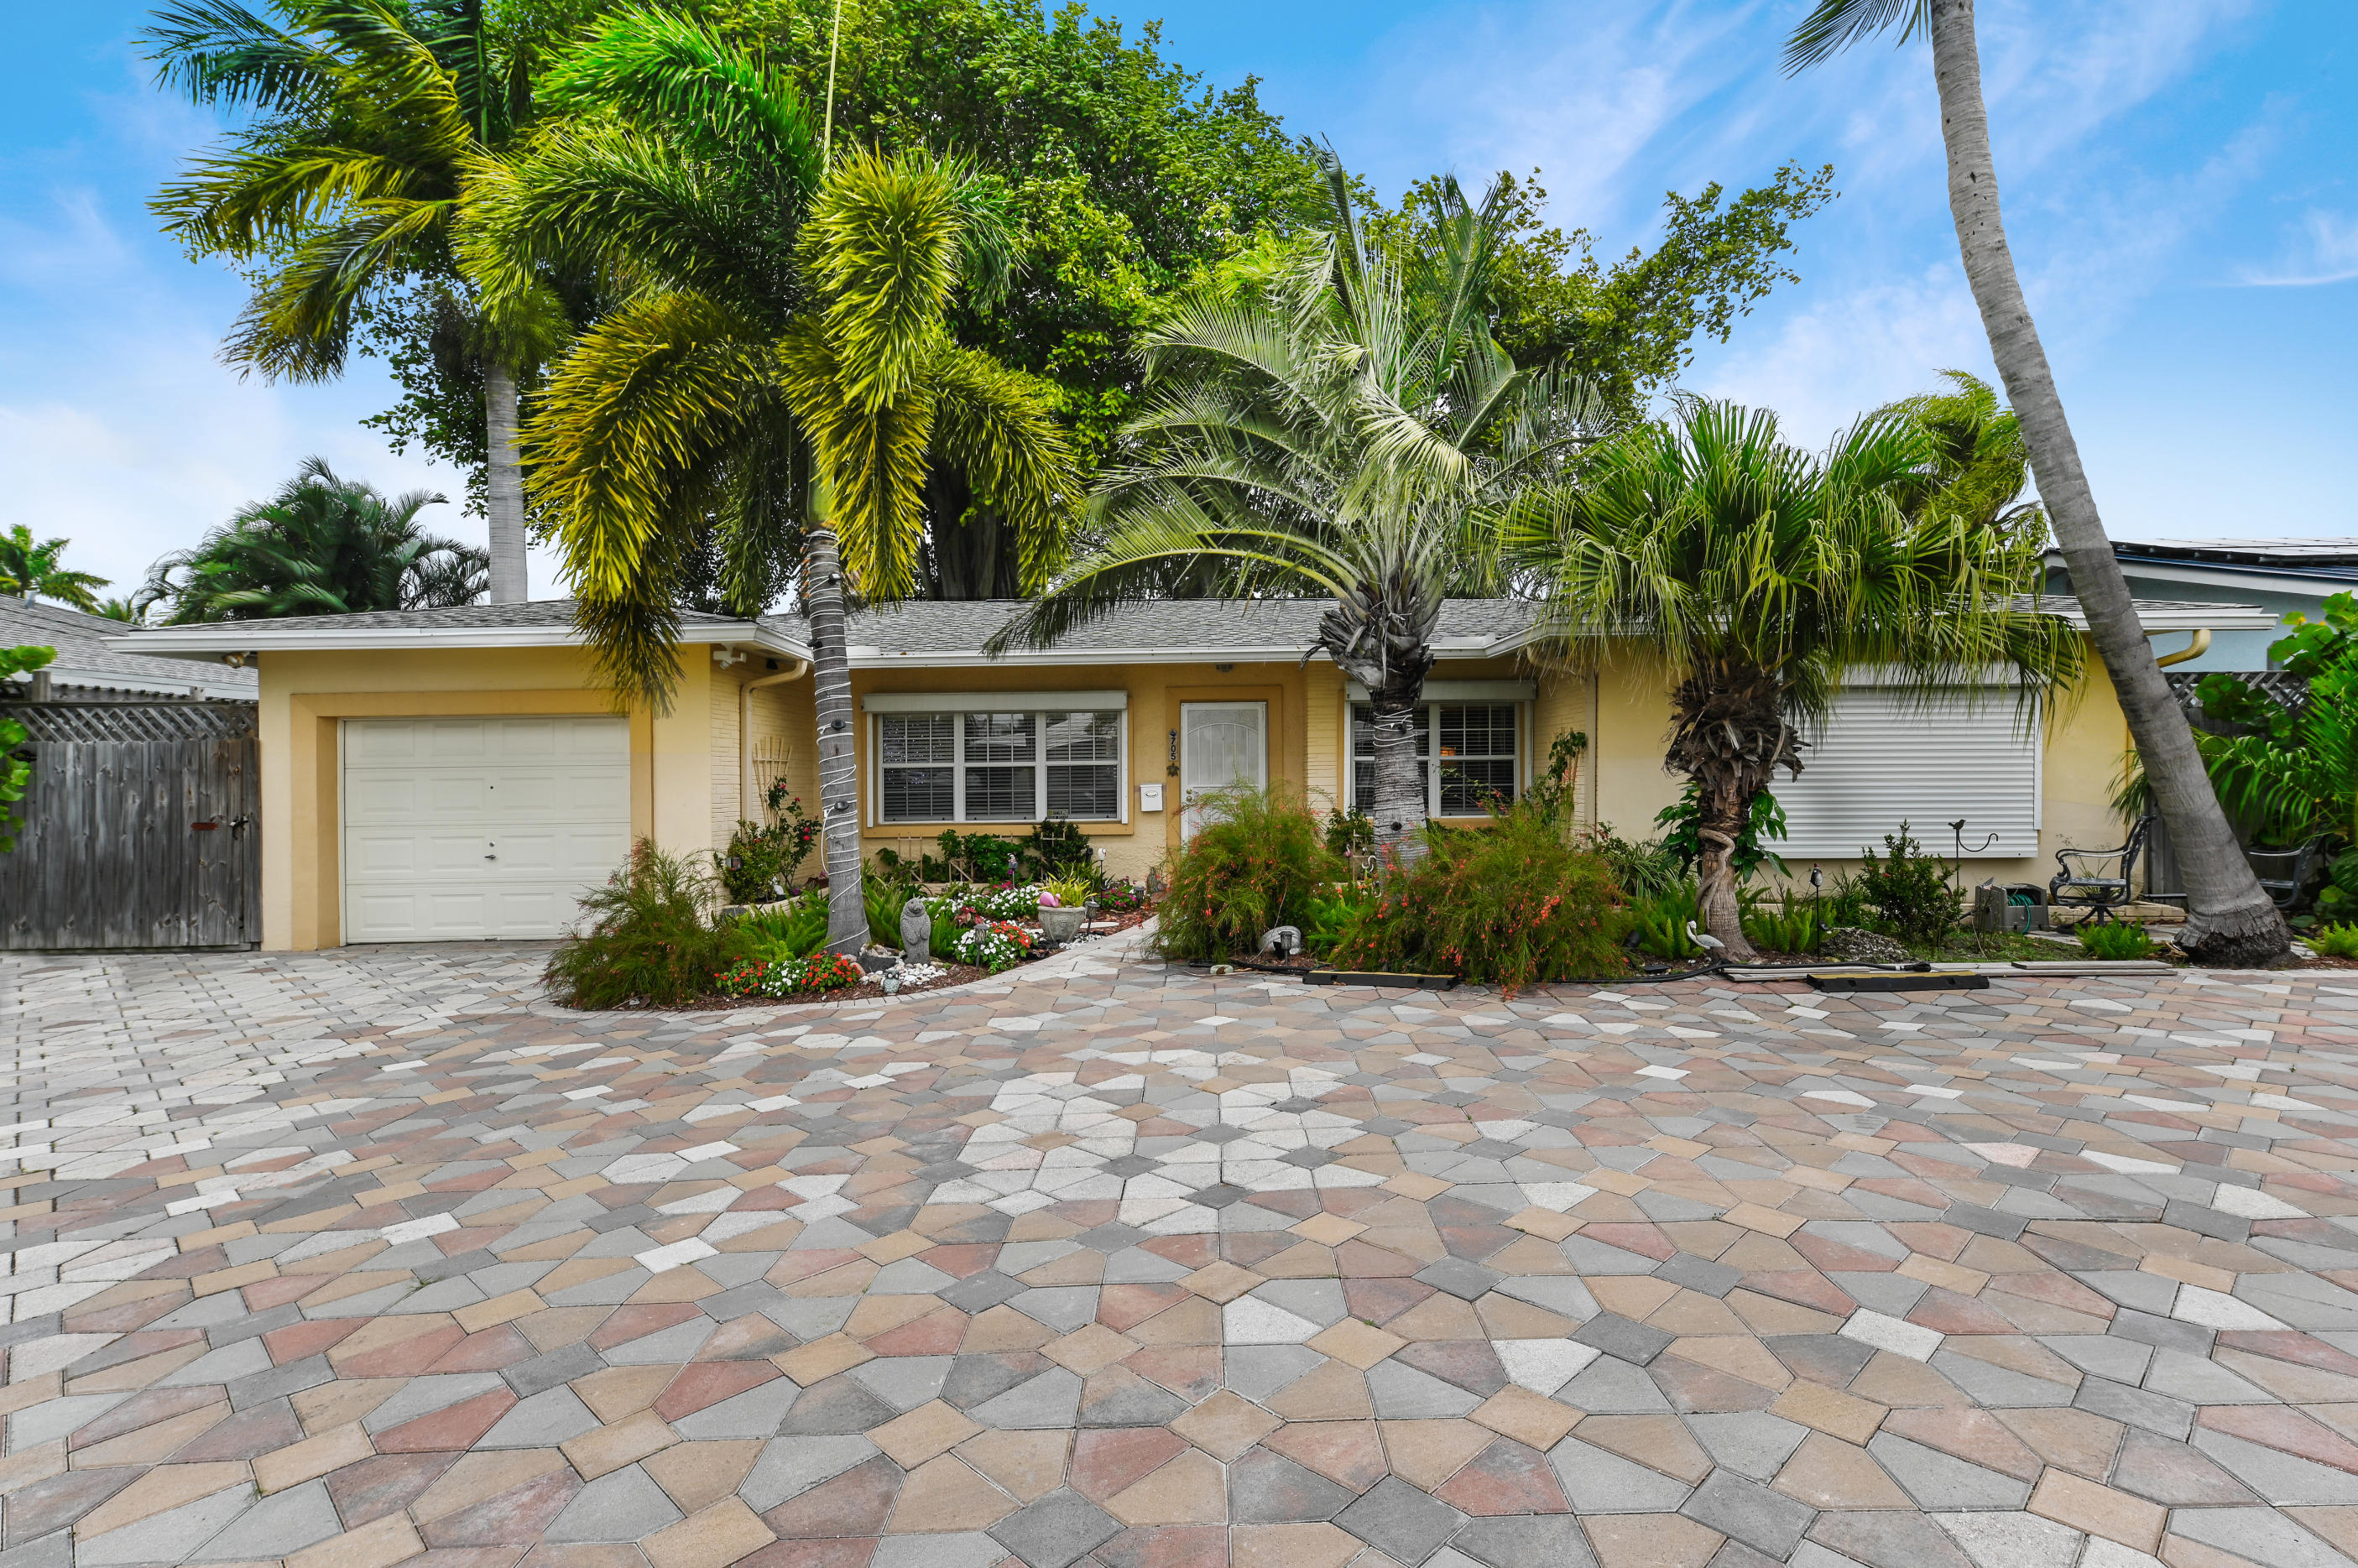 This perfectly situated 3 bedroom, 2 full baths waterfront home sits on a quiet canal just off the Intracoastal Waterway.  You won't need much gas to get to the ocean or the inlet which is less than 700 yards away. Bring your boats and water toys to the brand-new 75' seawall and dock with full water and electric.  Enjoy Deep-Water Ocean Access/No Fixed Bridges, north or south.  Larger boats and yachts are welcome too!  The home has a Rainsoft whole-home water filtration system and 50amp RV hookup.Fishermen and casual boaters alike will love the extreme close proximity to the ocean, waterfront dining, or your choice of Sunday Sandbars, all just minutes away. And the Bahamas are closer than Miami, at a mere 60 miles dock to dock.  Every day is a good day to make the Ocean your backyard.. NO HOA fees, no neighborhood restrictions on boats/RVs/etc.  Just casual South Florida waterfront living at its finest.